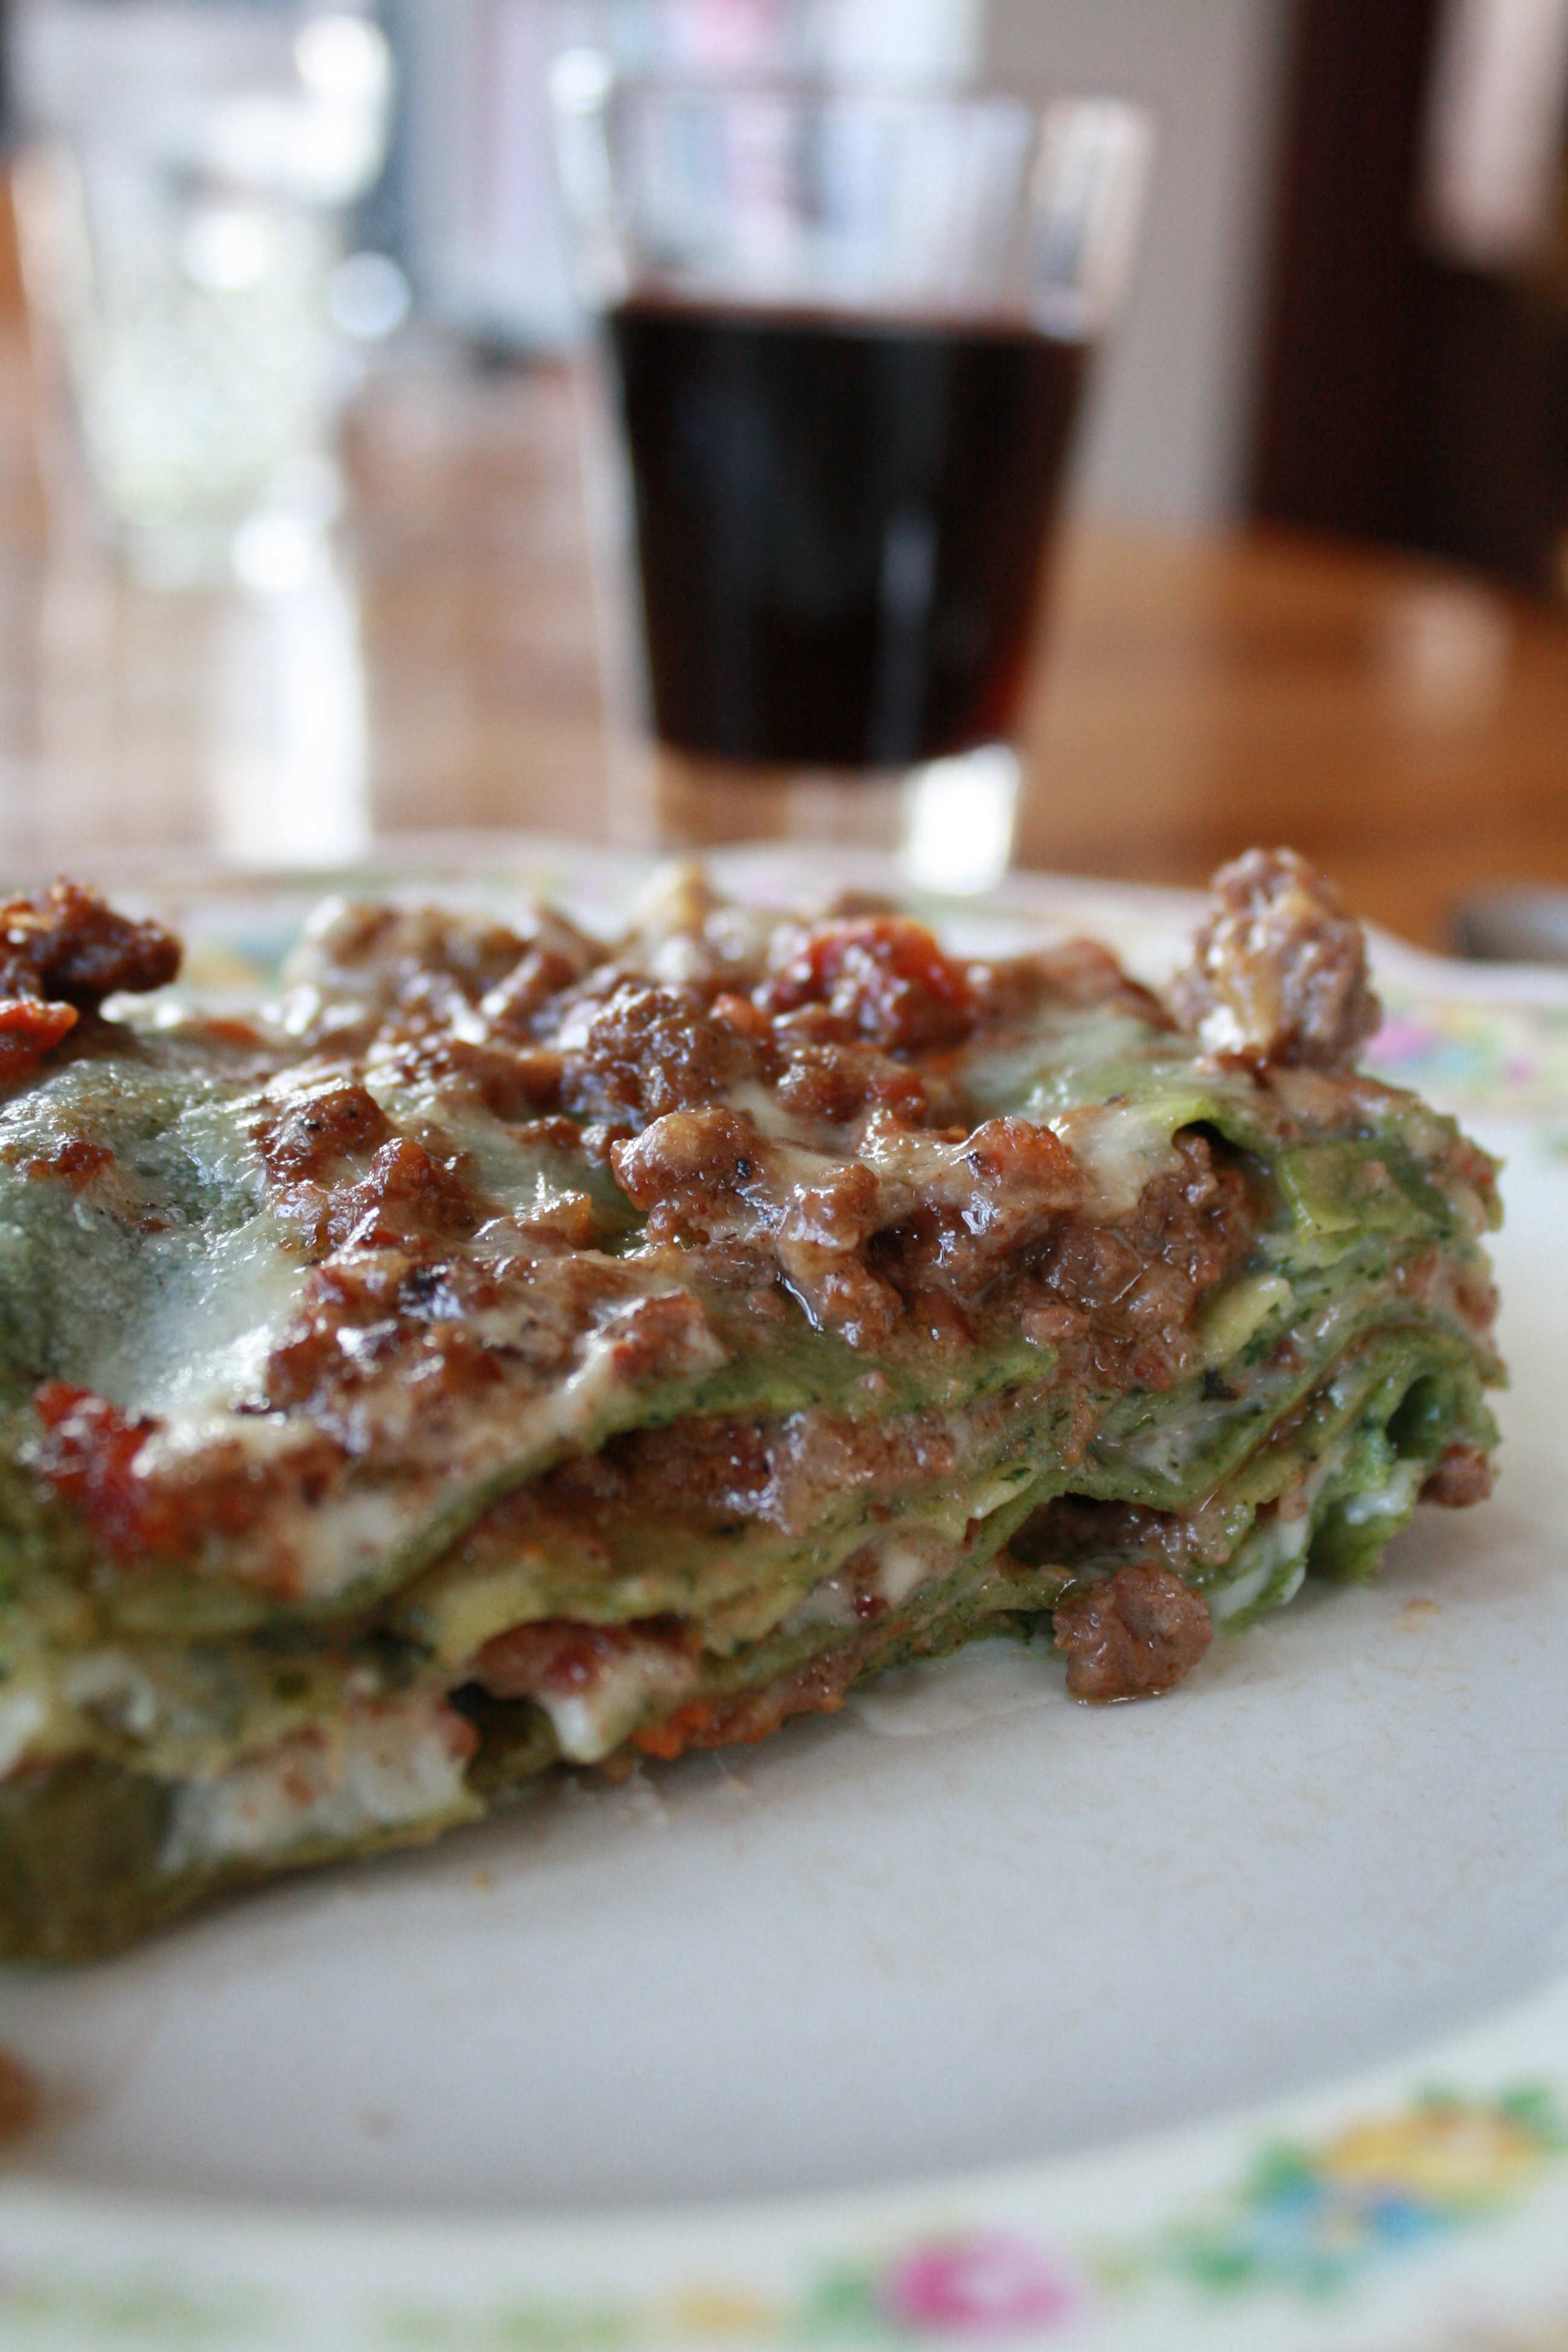 db-lasagne-with-wine-glass